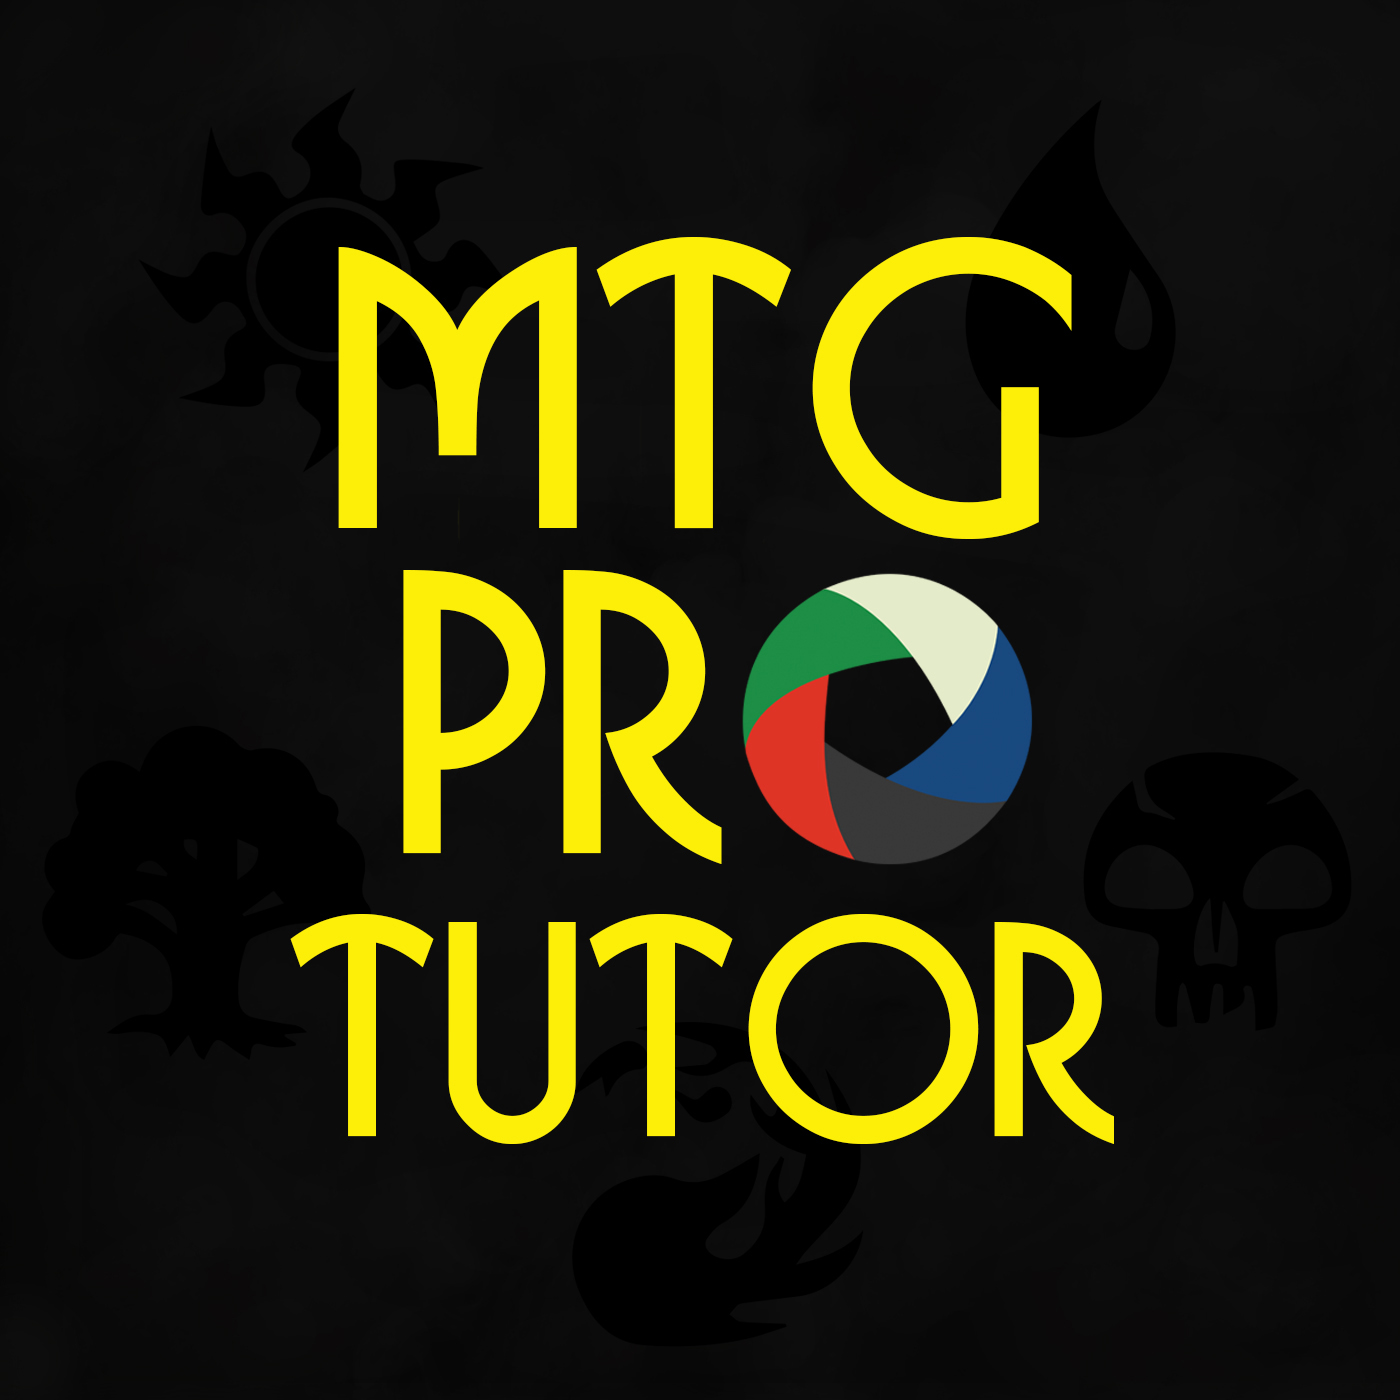 MTG Pro Tutor - Insights, Tips & Advice from Magic: The Gathering Pros show art